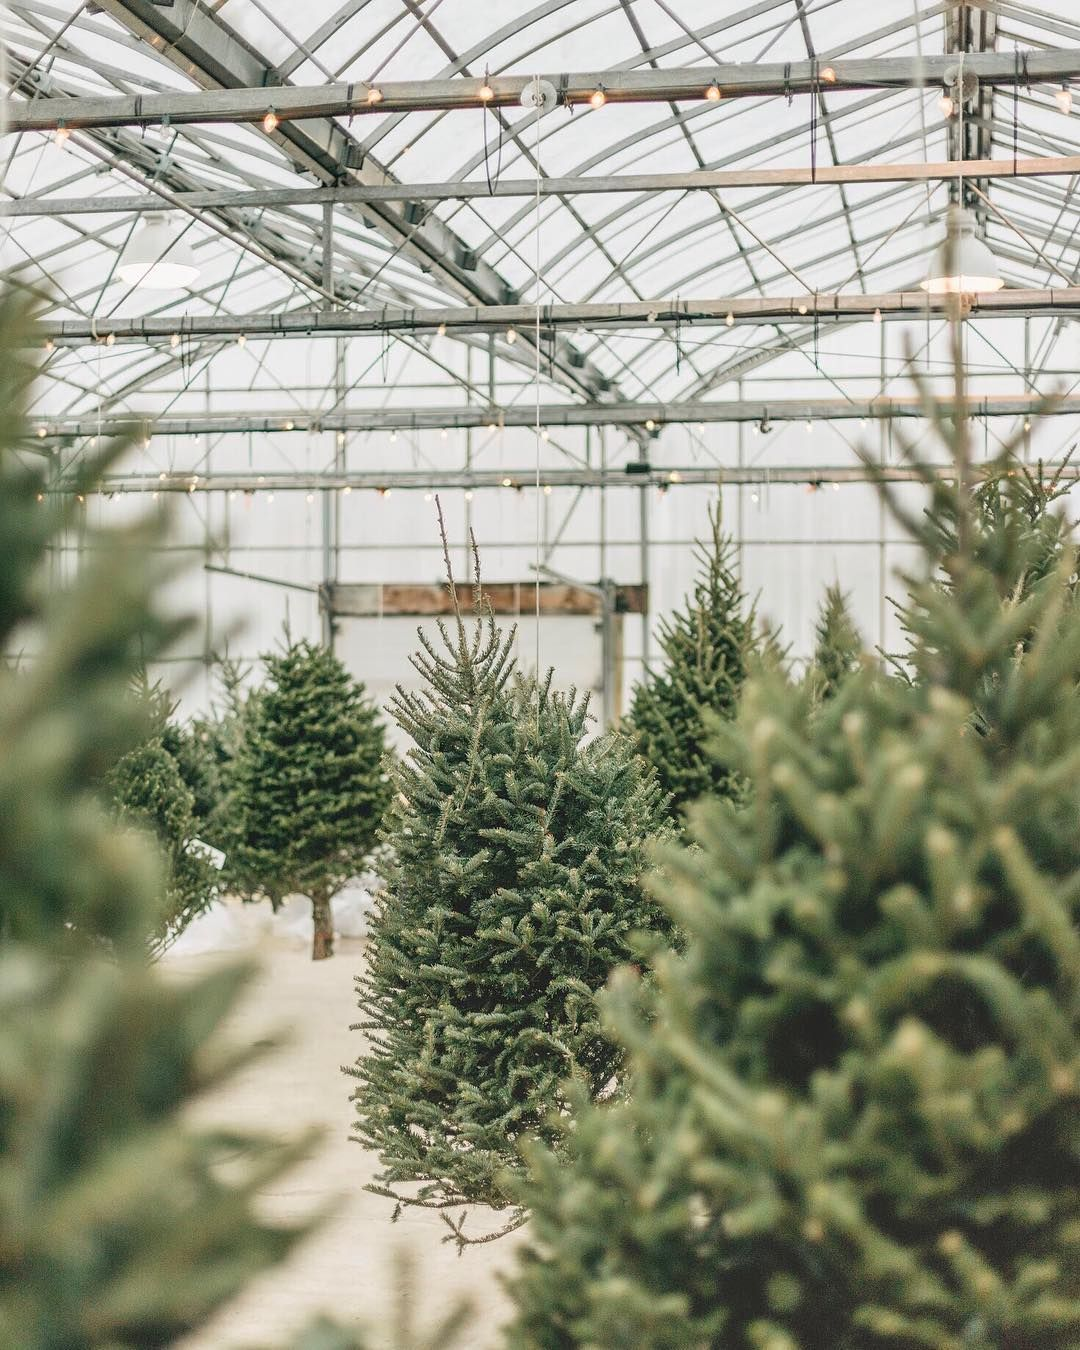 Ready To Trim The Tree Visit Our Heated Indoor Christmas Tree Forest To Pick Your Perfect Tree Christmas Tree Forest Indoor Christmas Christmas Tree